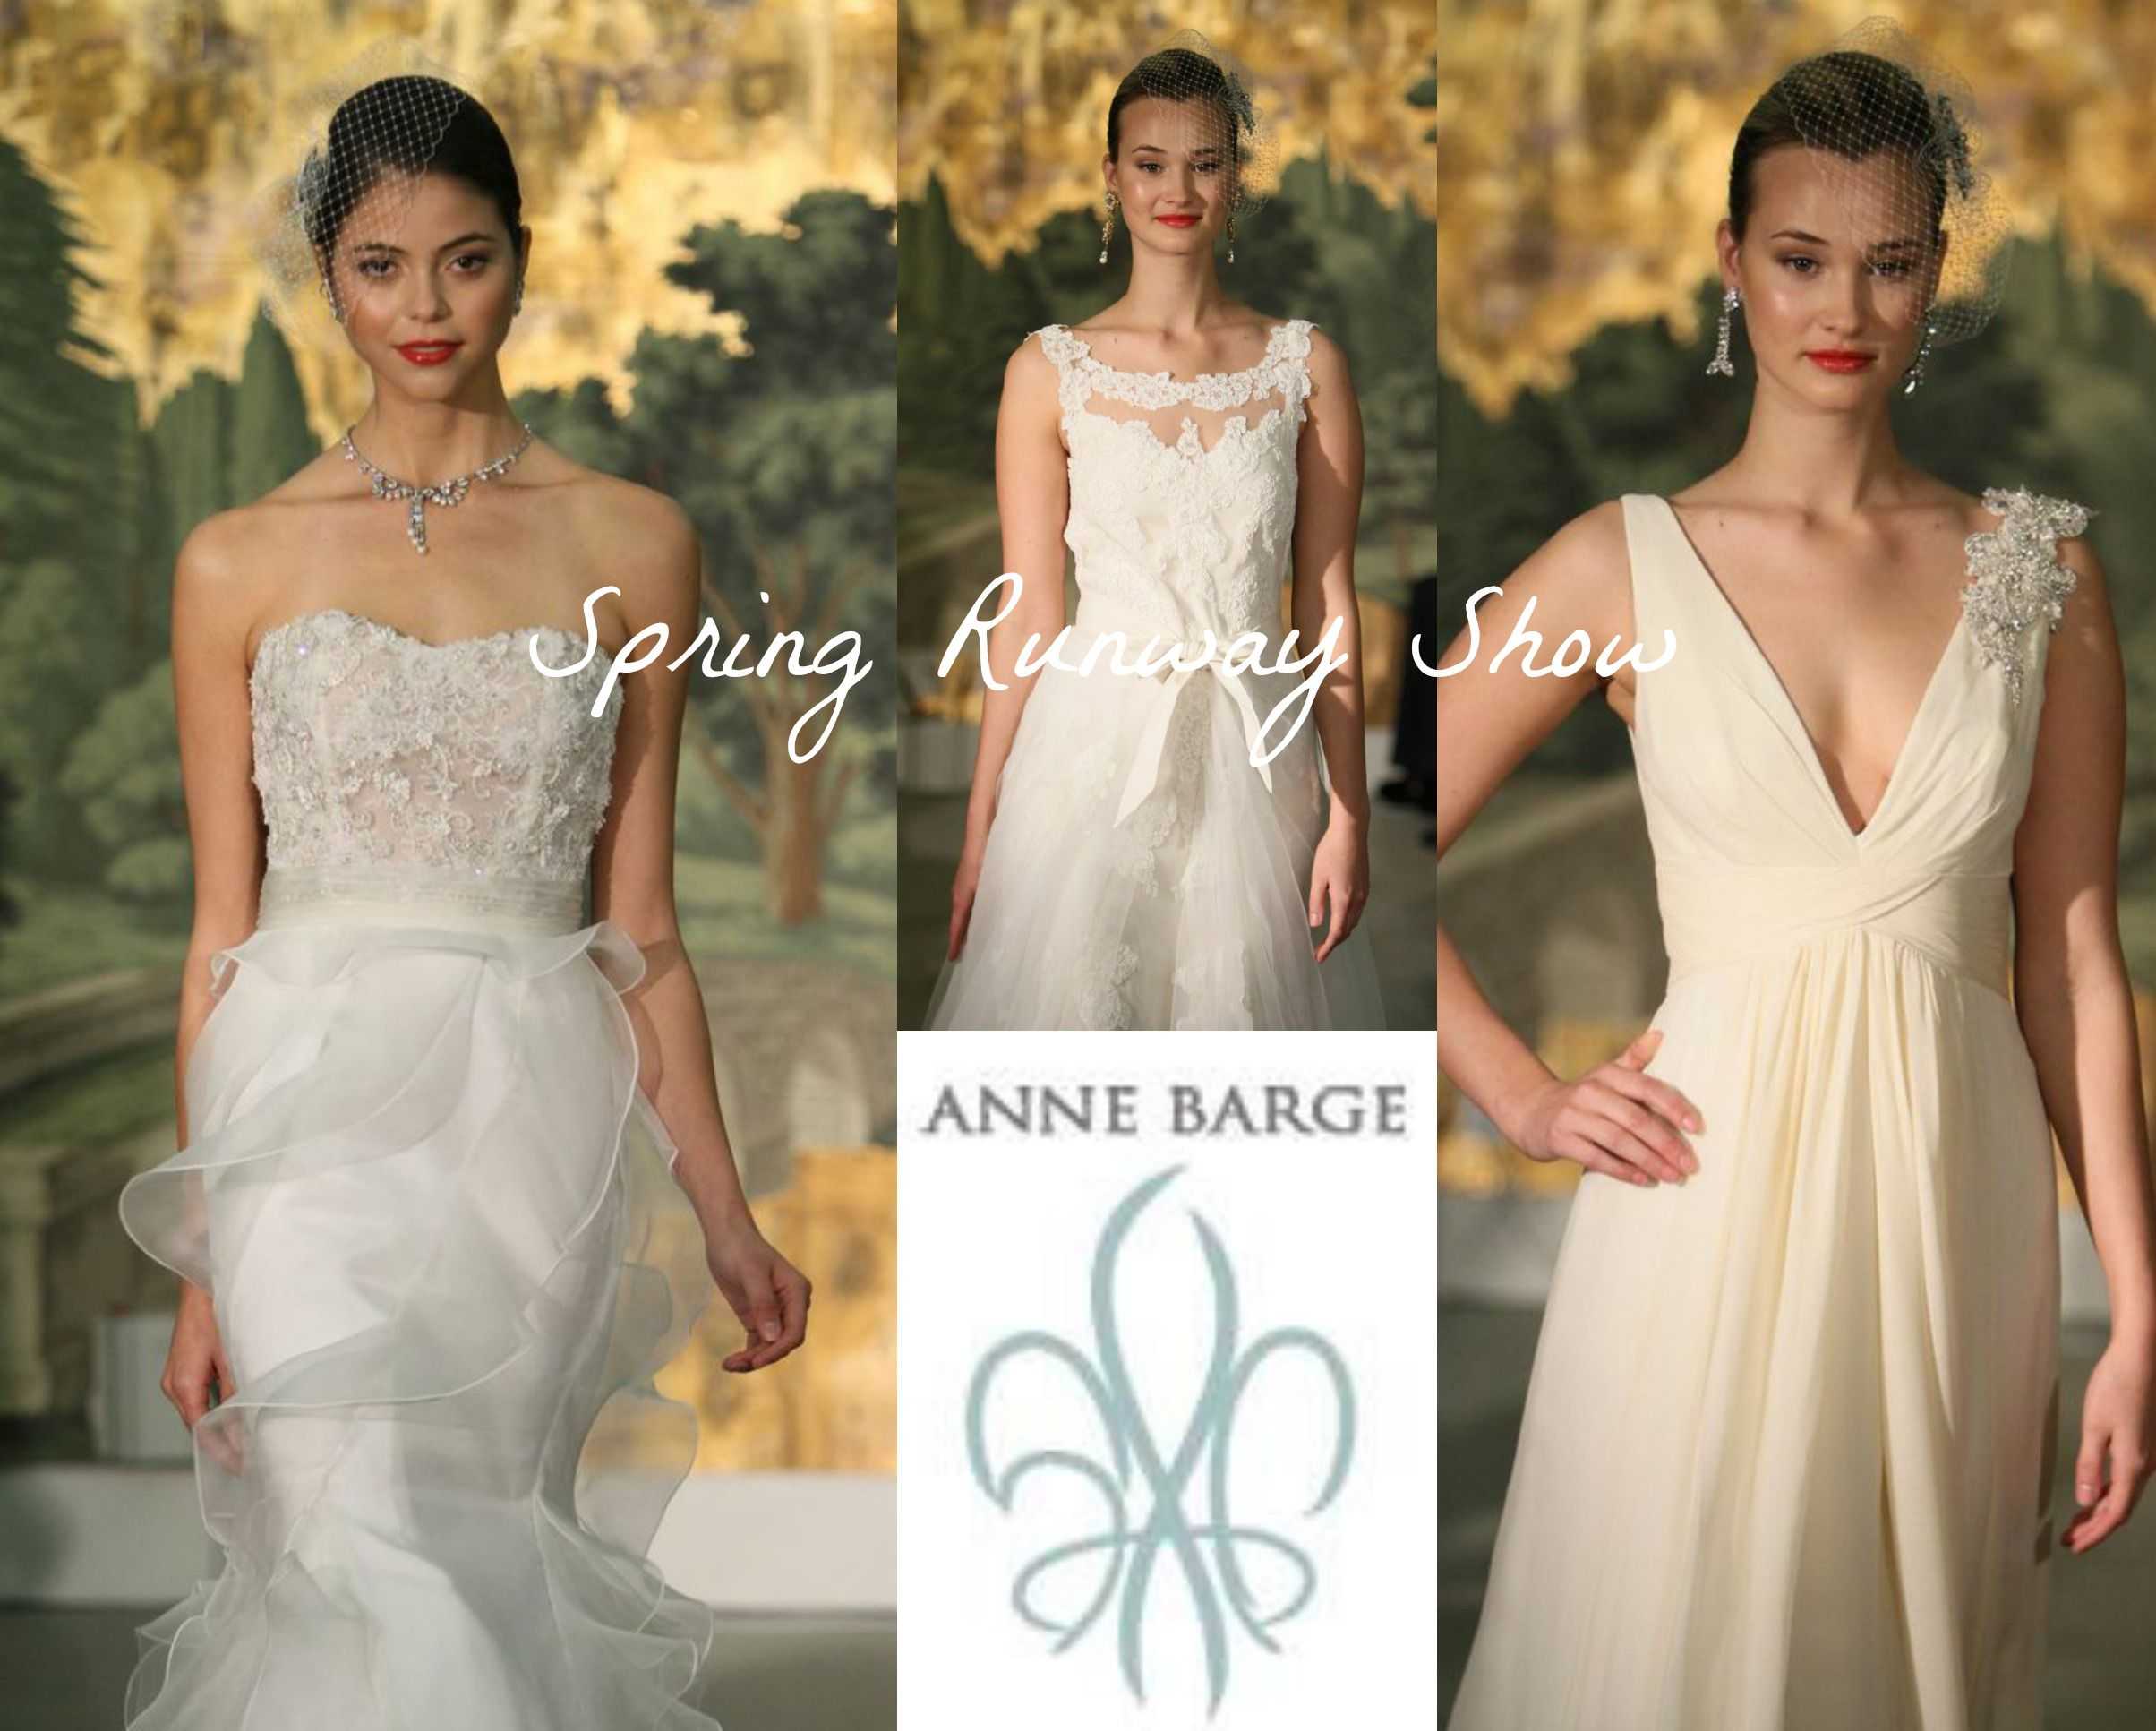 The Anne Barge Rustic Bridesmaid Dresses Fall Bridesmaid Dresses 2017 Fall Bridesmaid Dresses 2018 Knot wedding dress Fall Bridesmaid Dresses